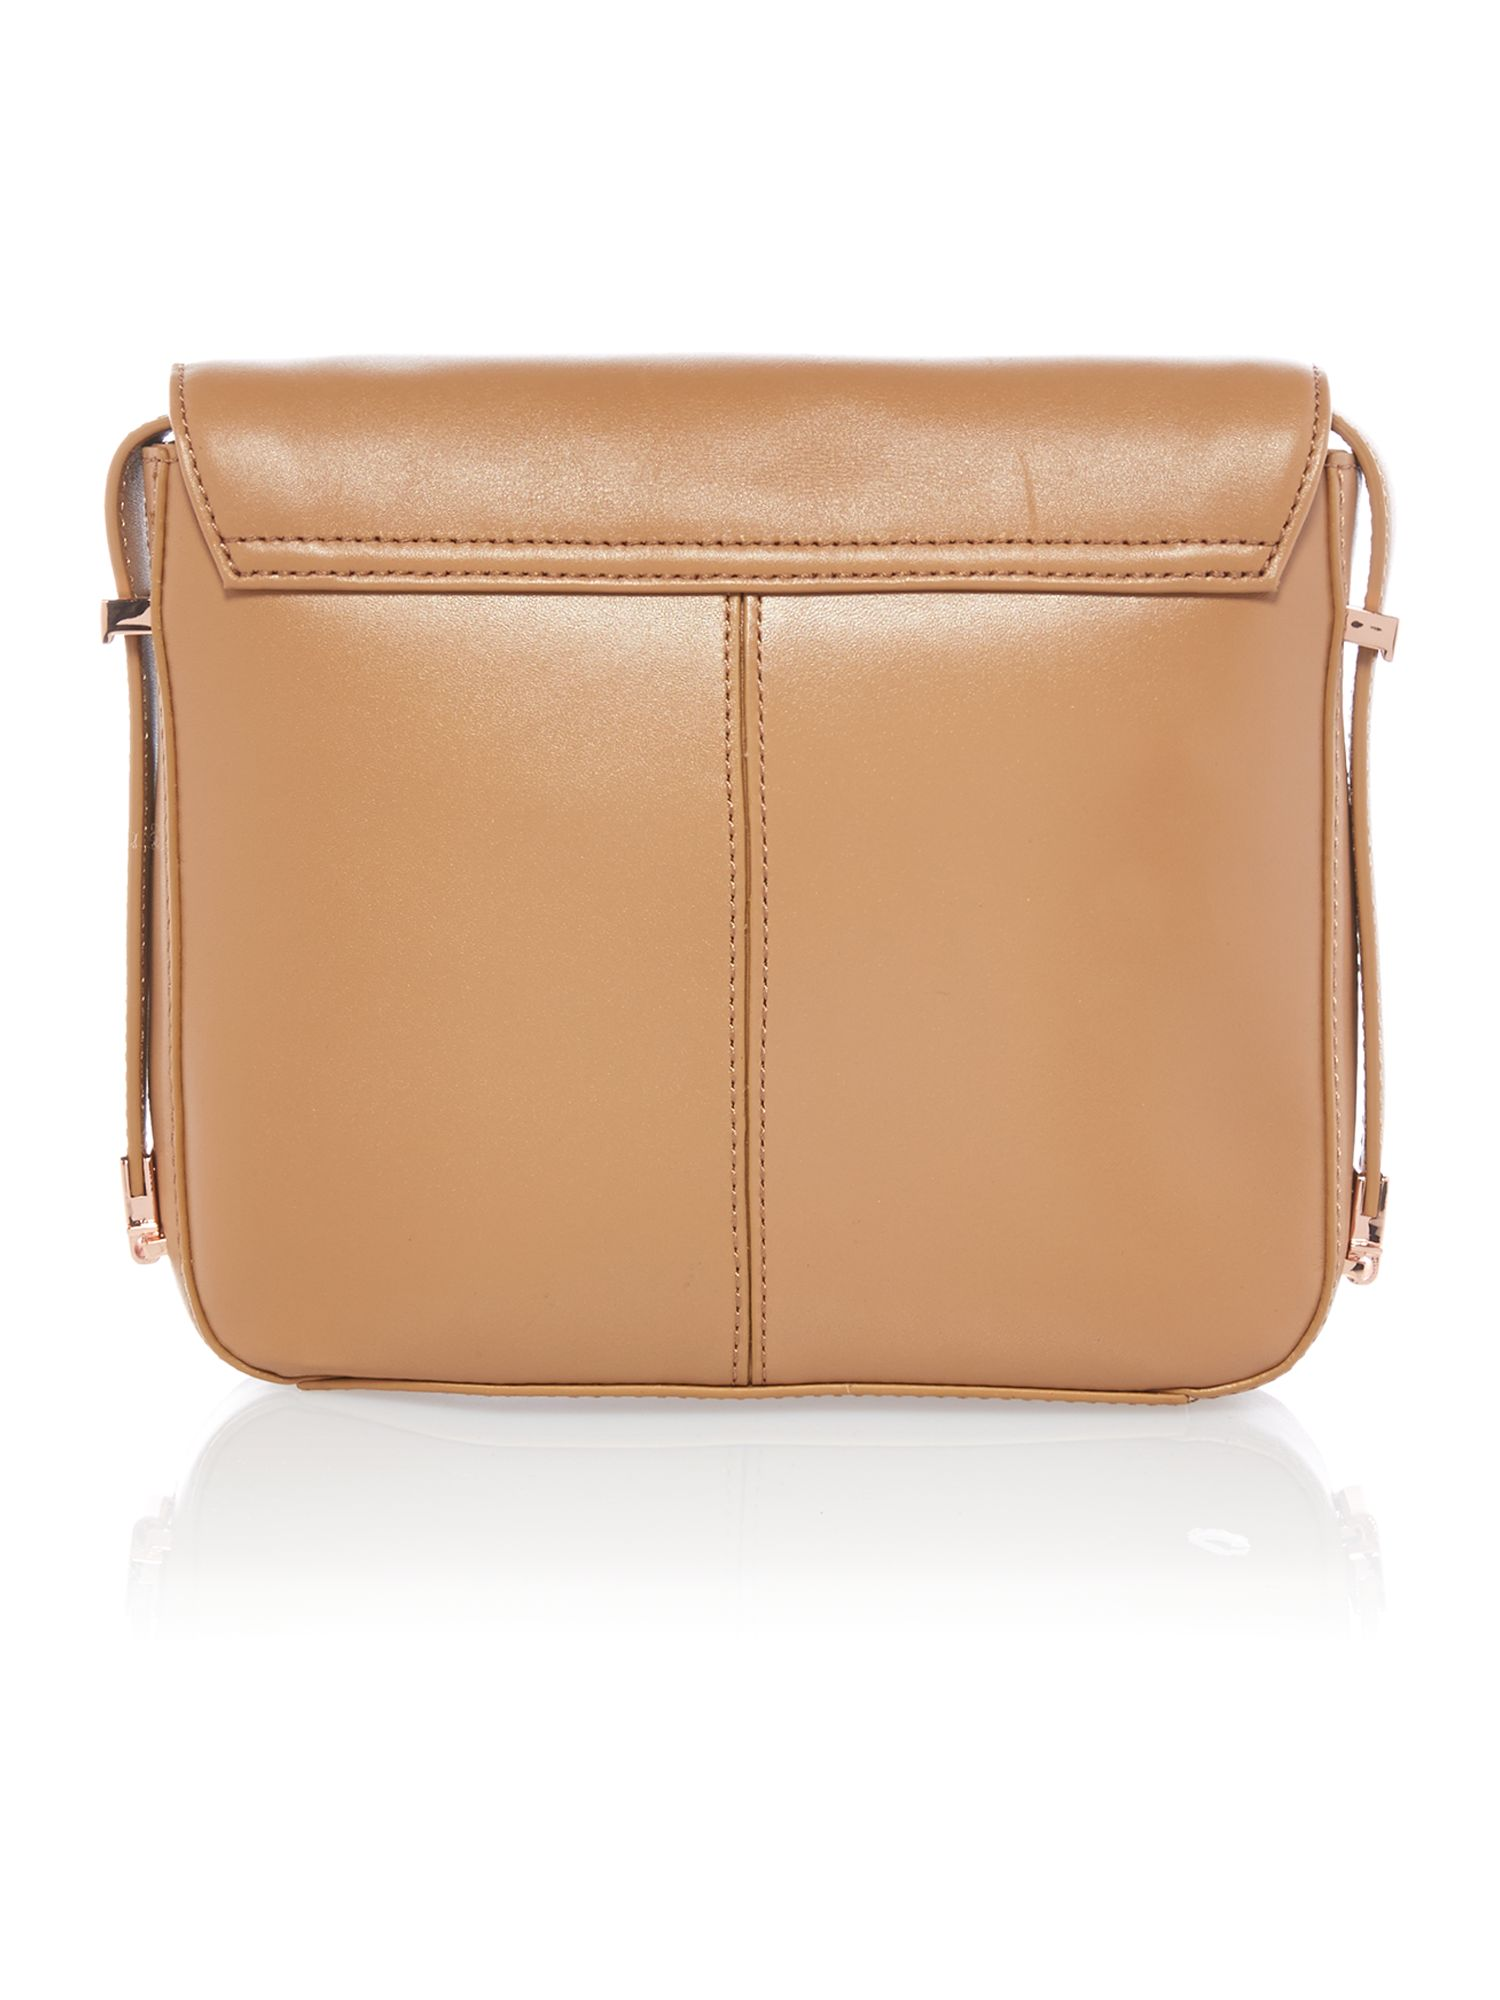 Medium leather tan metal bar cross body bag